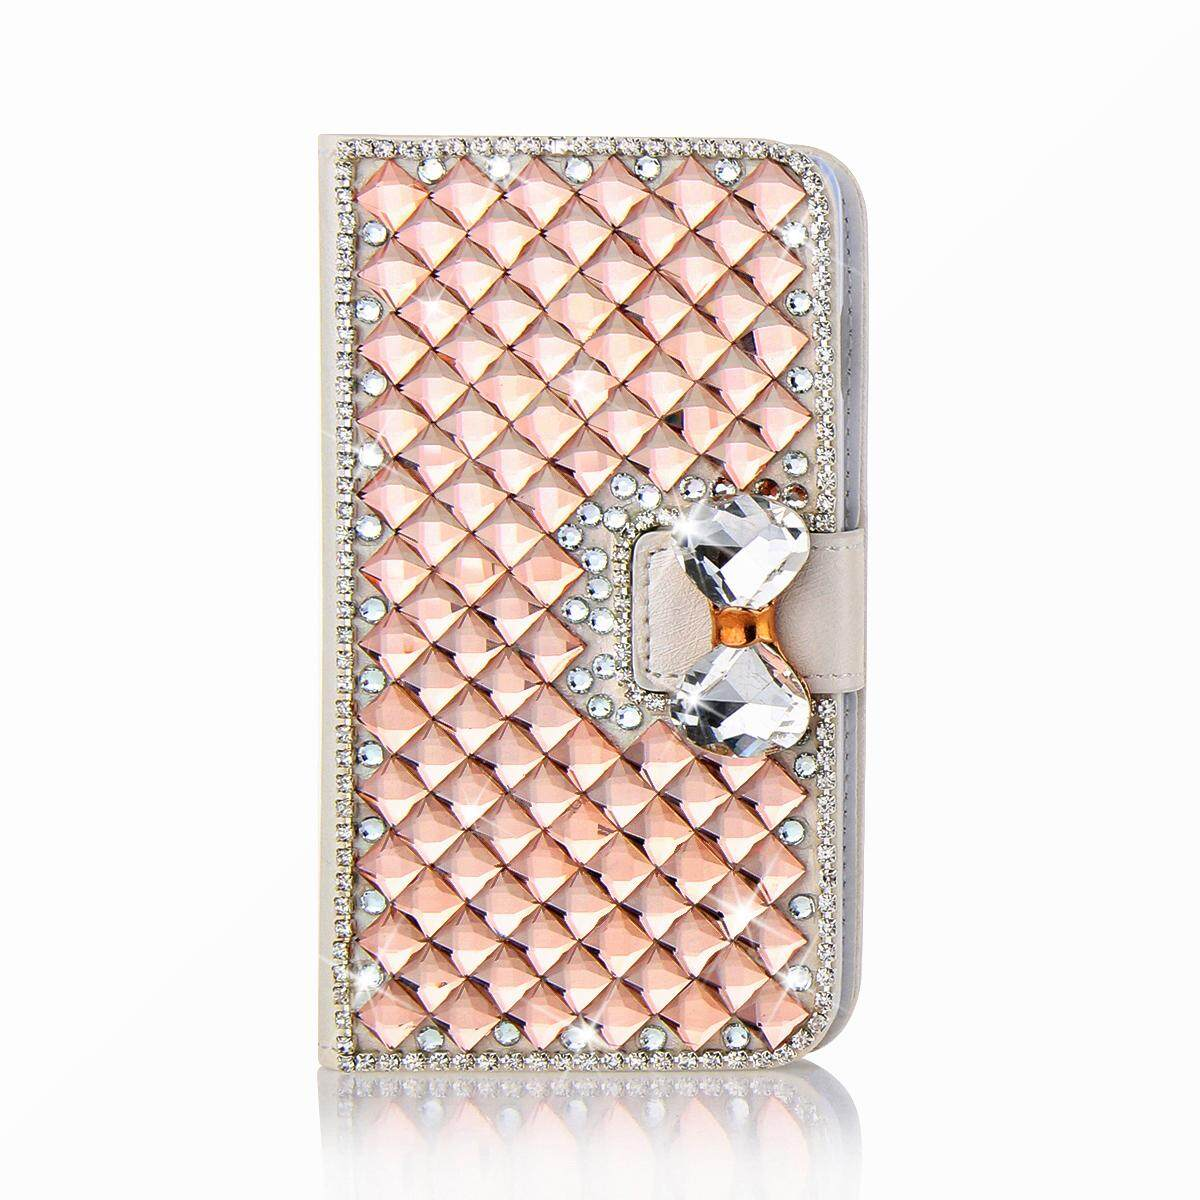 Moonmini Case for 3D Luxury Bling Rhinestones Diamonds Bow Bone PU Leather Flip Case Cover Wallet with Card Holders for LG K20 Plus / LG LV5 - intl